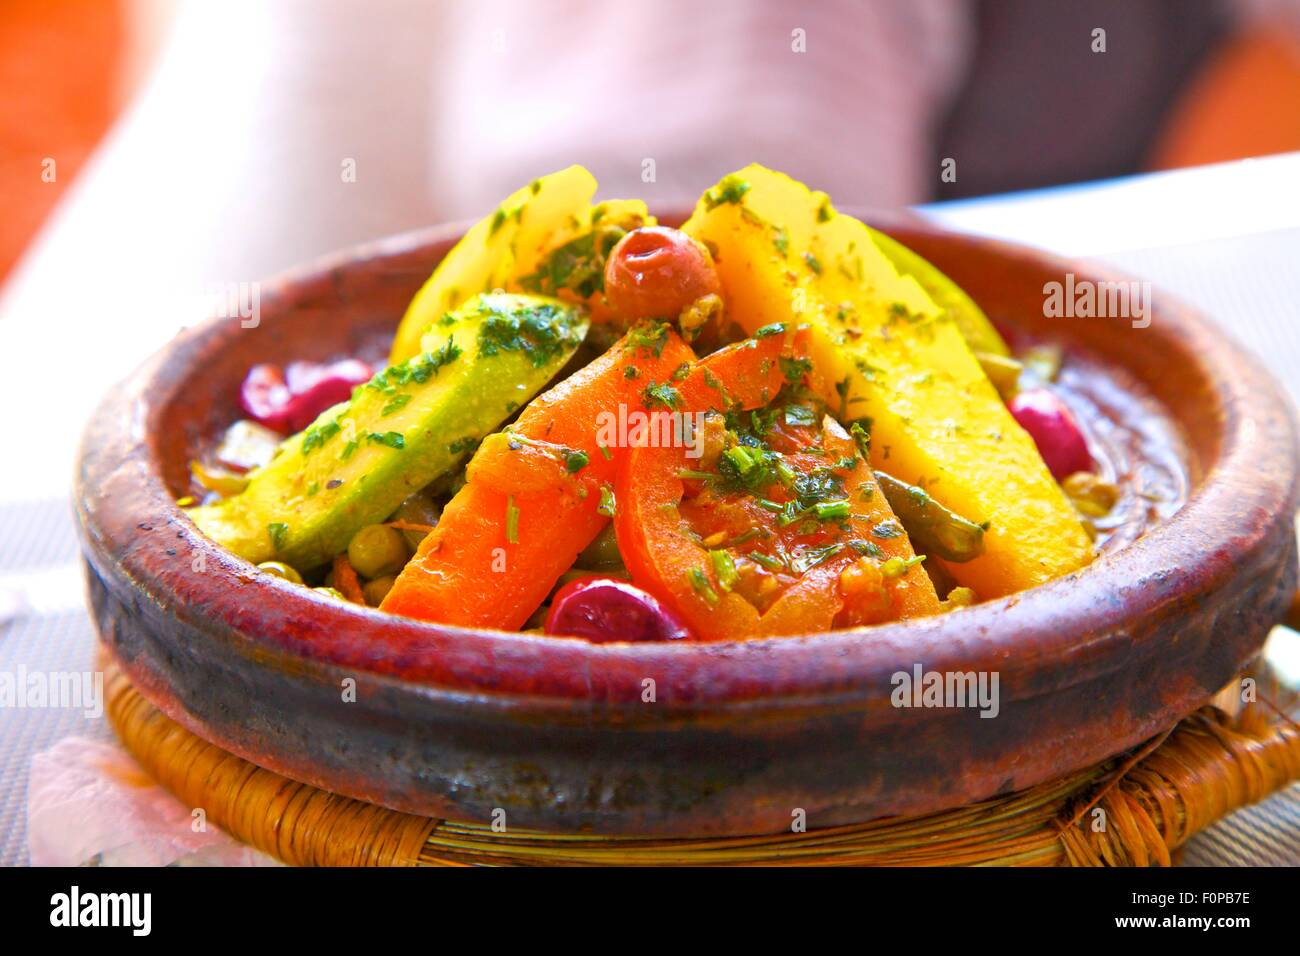 Moroccan food stock photos moroccan food stock images alamy vegetable tagine casablanca morocco north africa stock image forumfinder Gallery